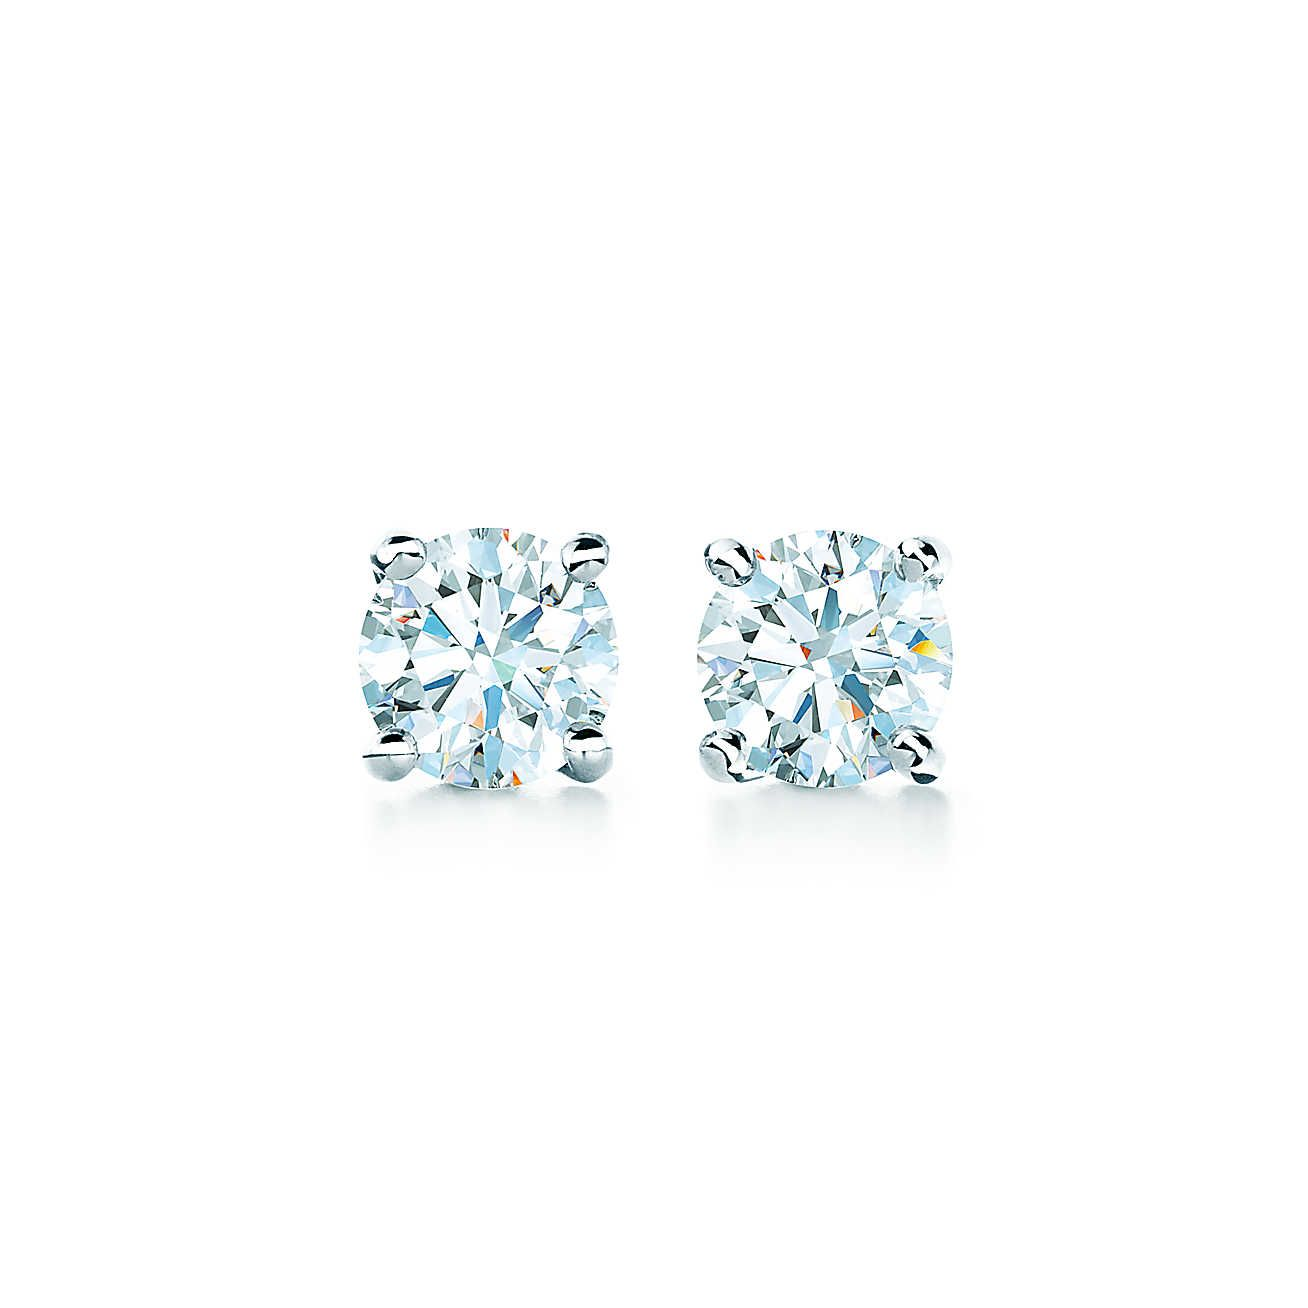 Tiffany Solitaire Diamond Earrings Sterling Silver Jewelry Pinterest And